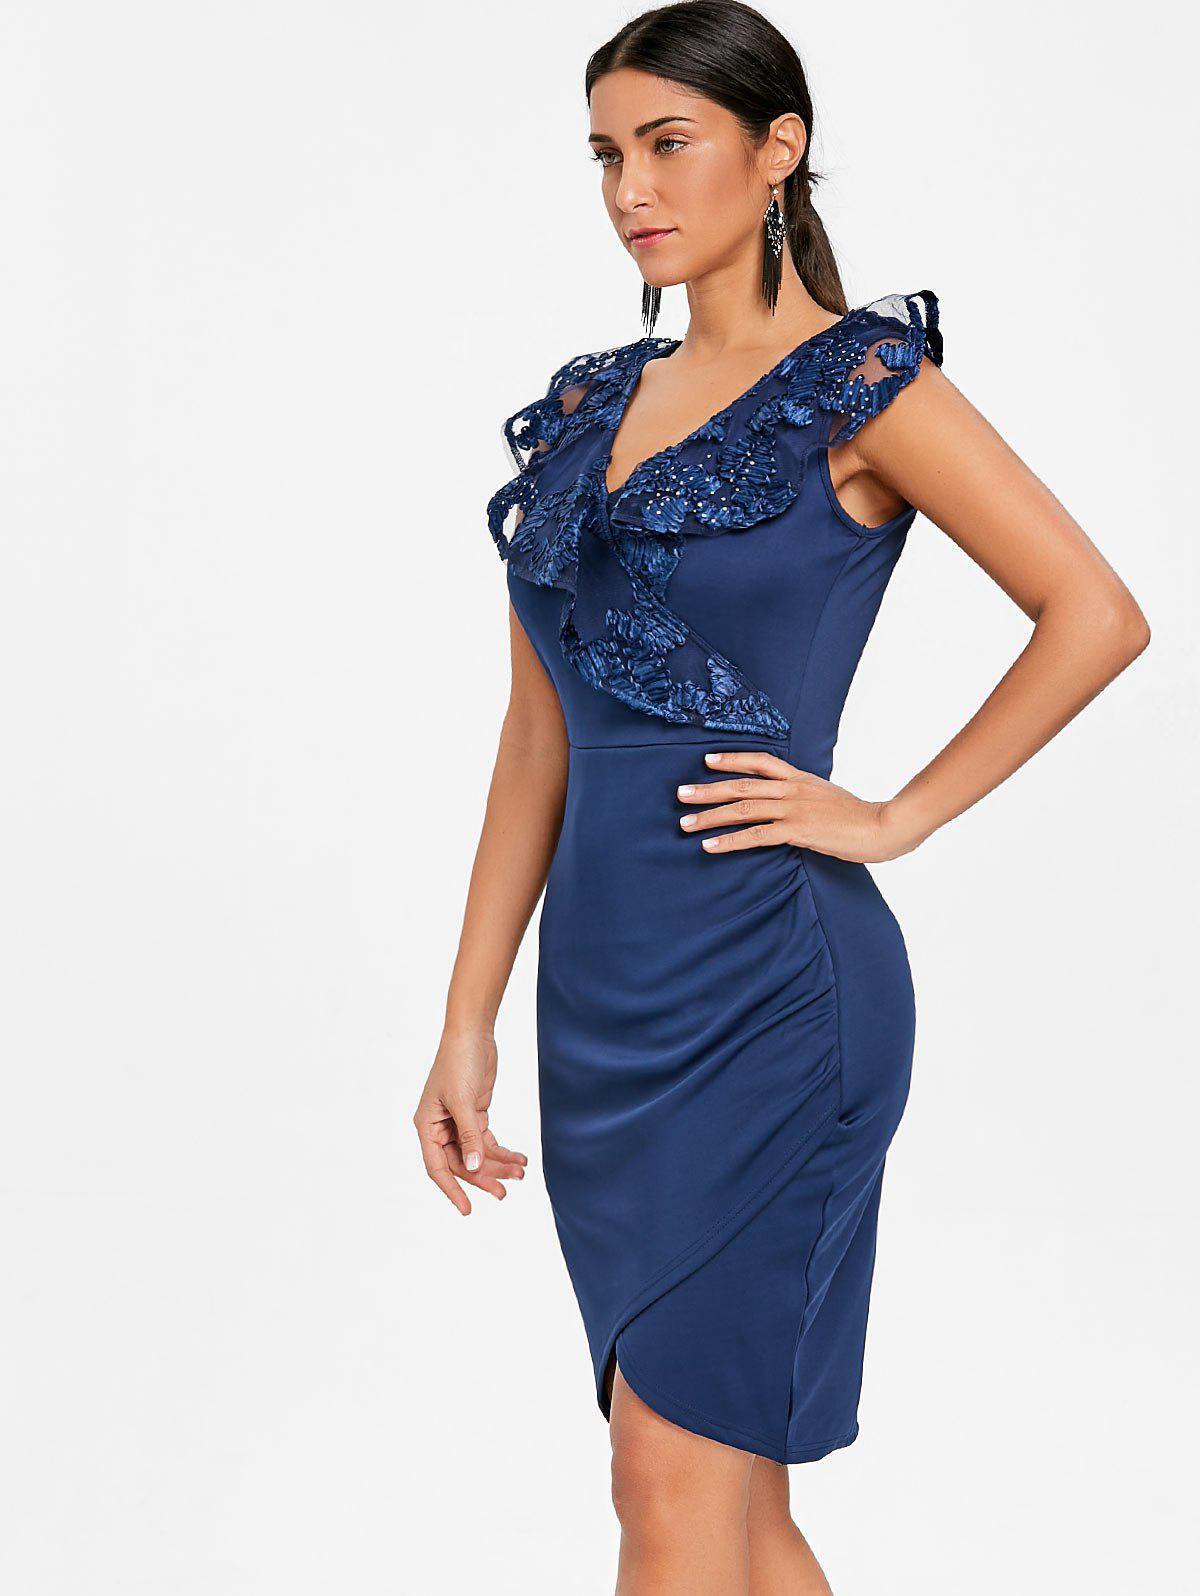 Ruched Lace Trimmed Bodycon Dress - BLUE S